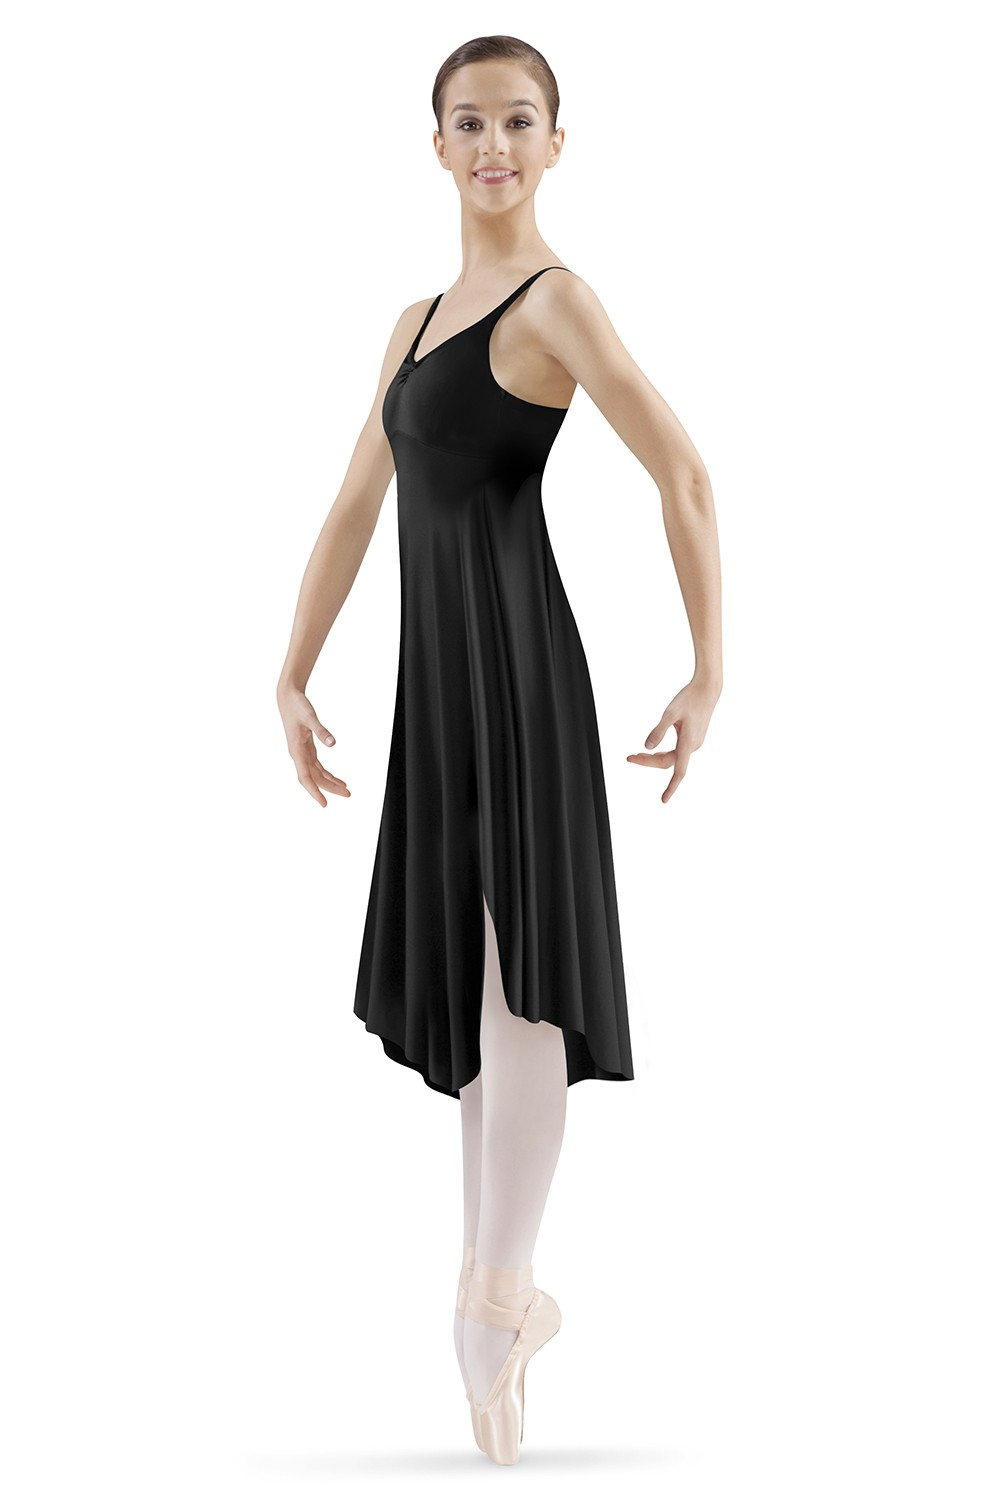 Asymmetrical Hem Tank Dress Women's Dance Skirts